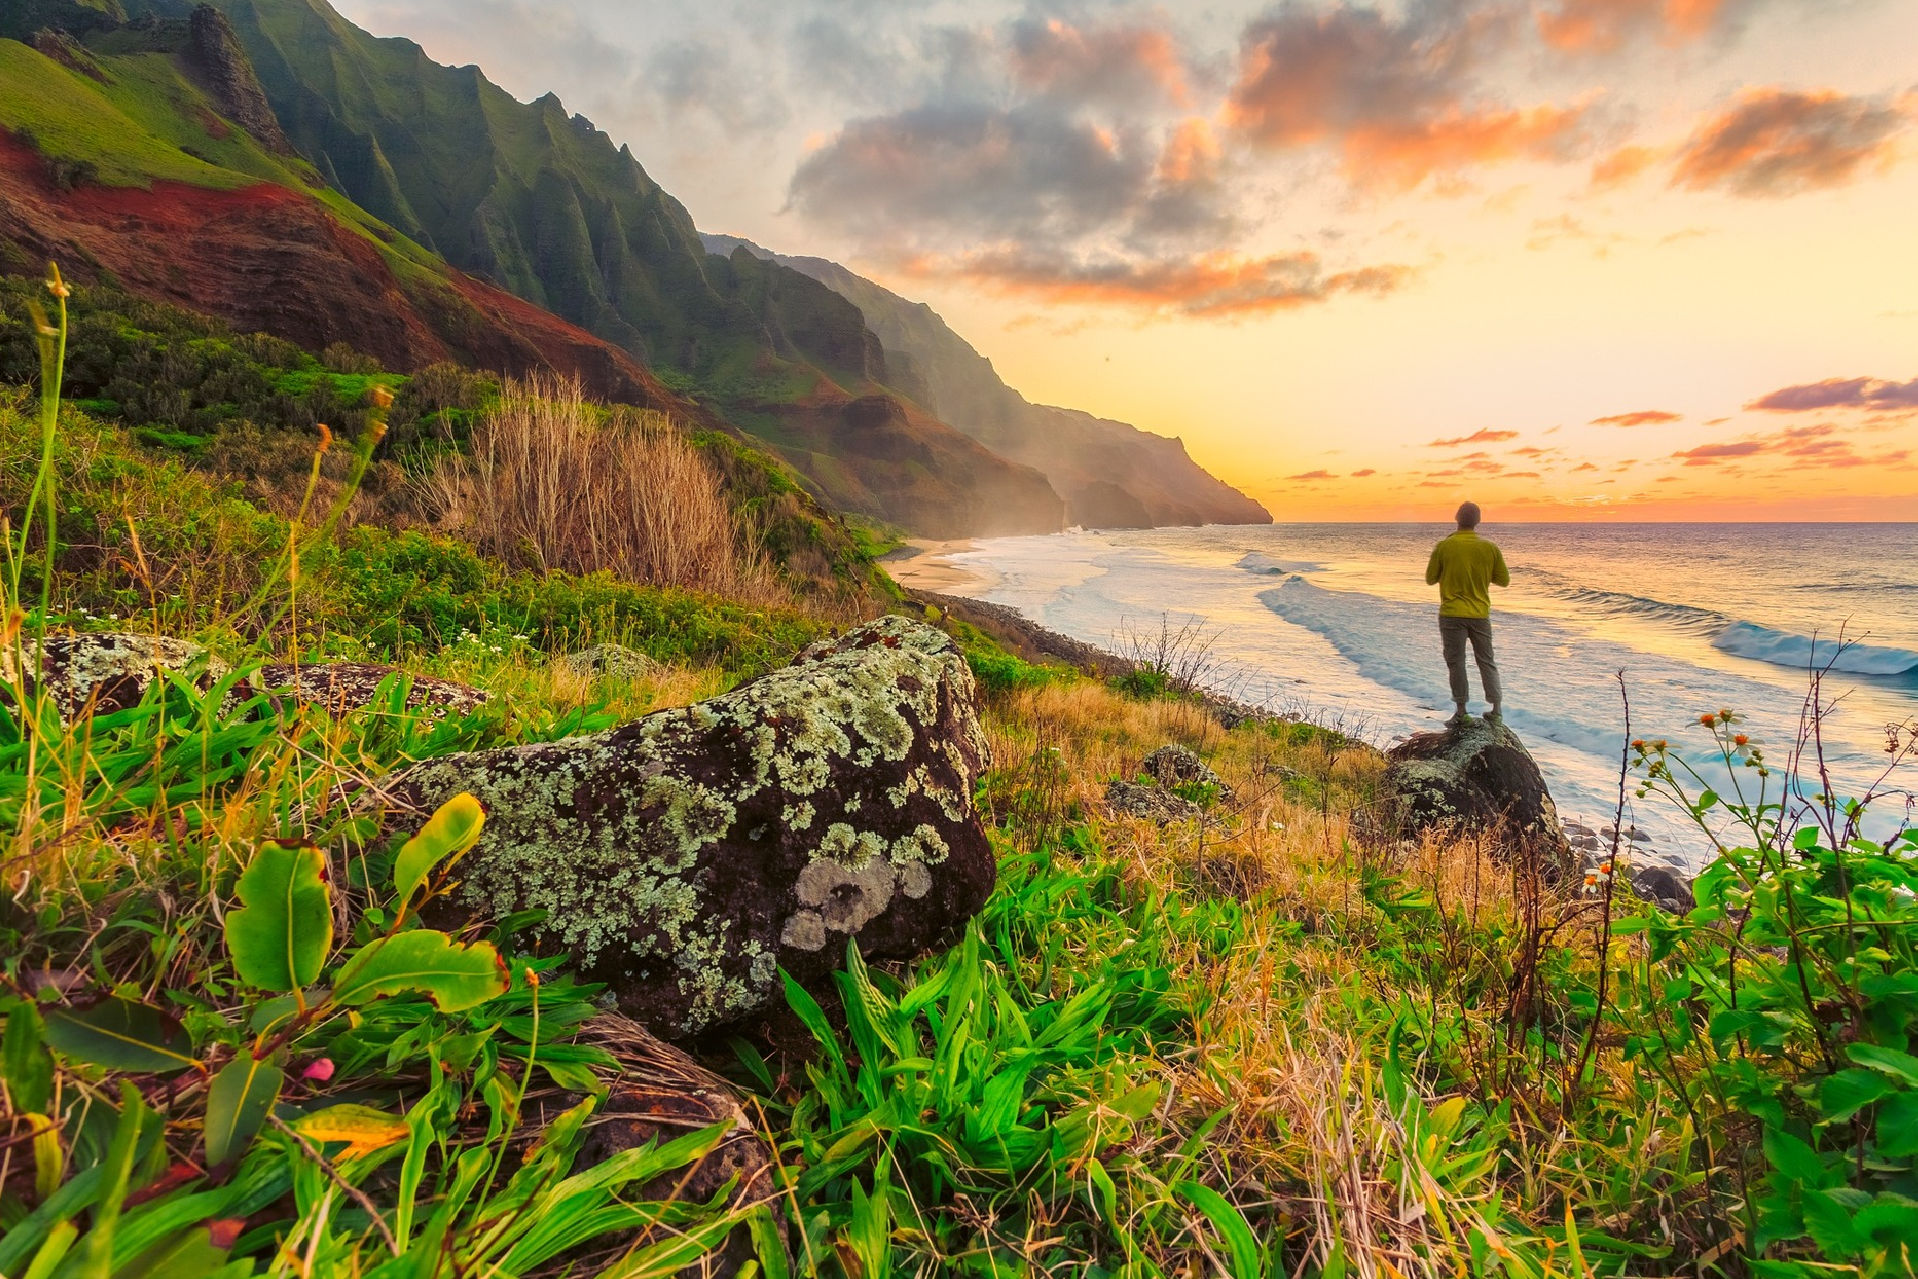 DESTINATIONS FOR SOLO TRAVELLERS